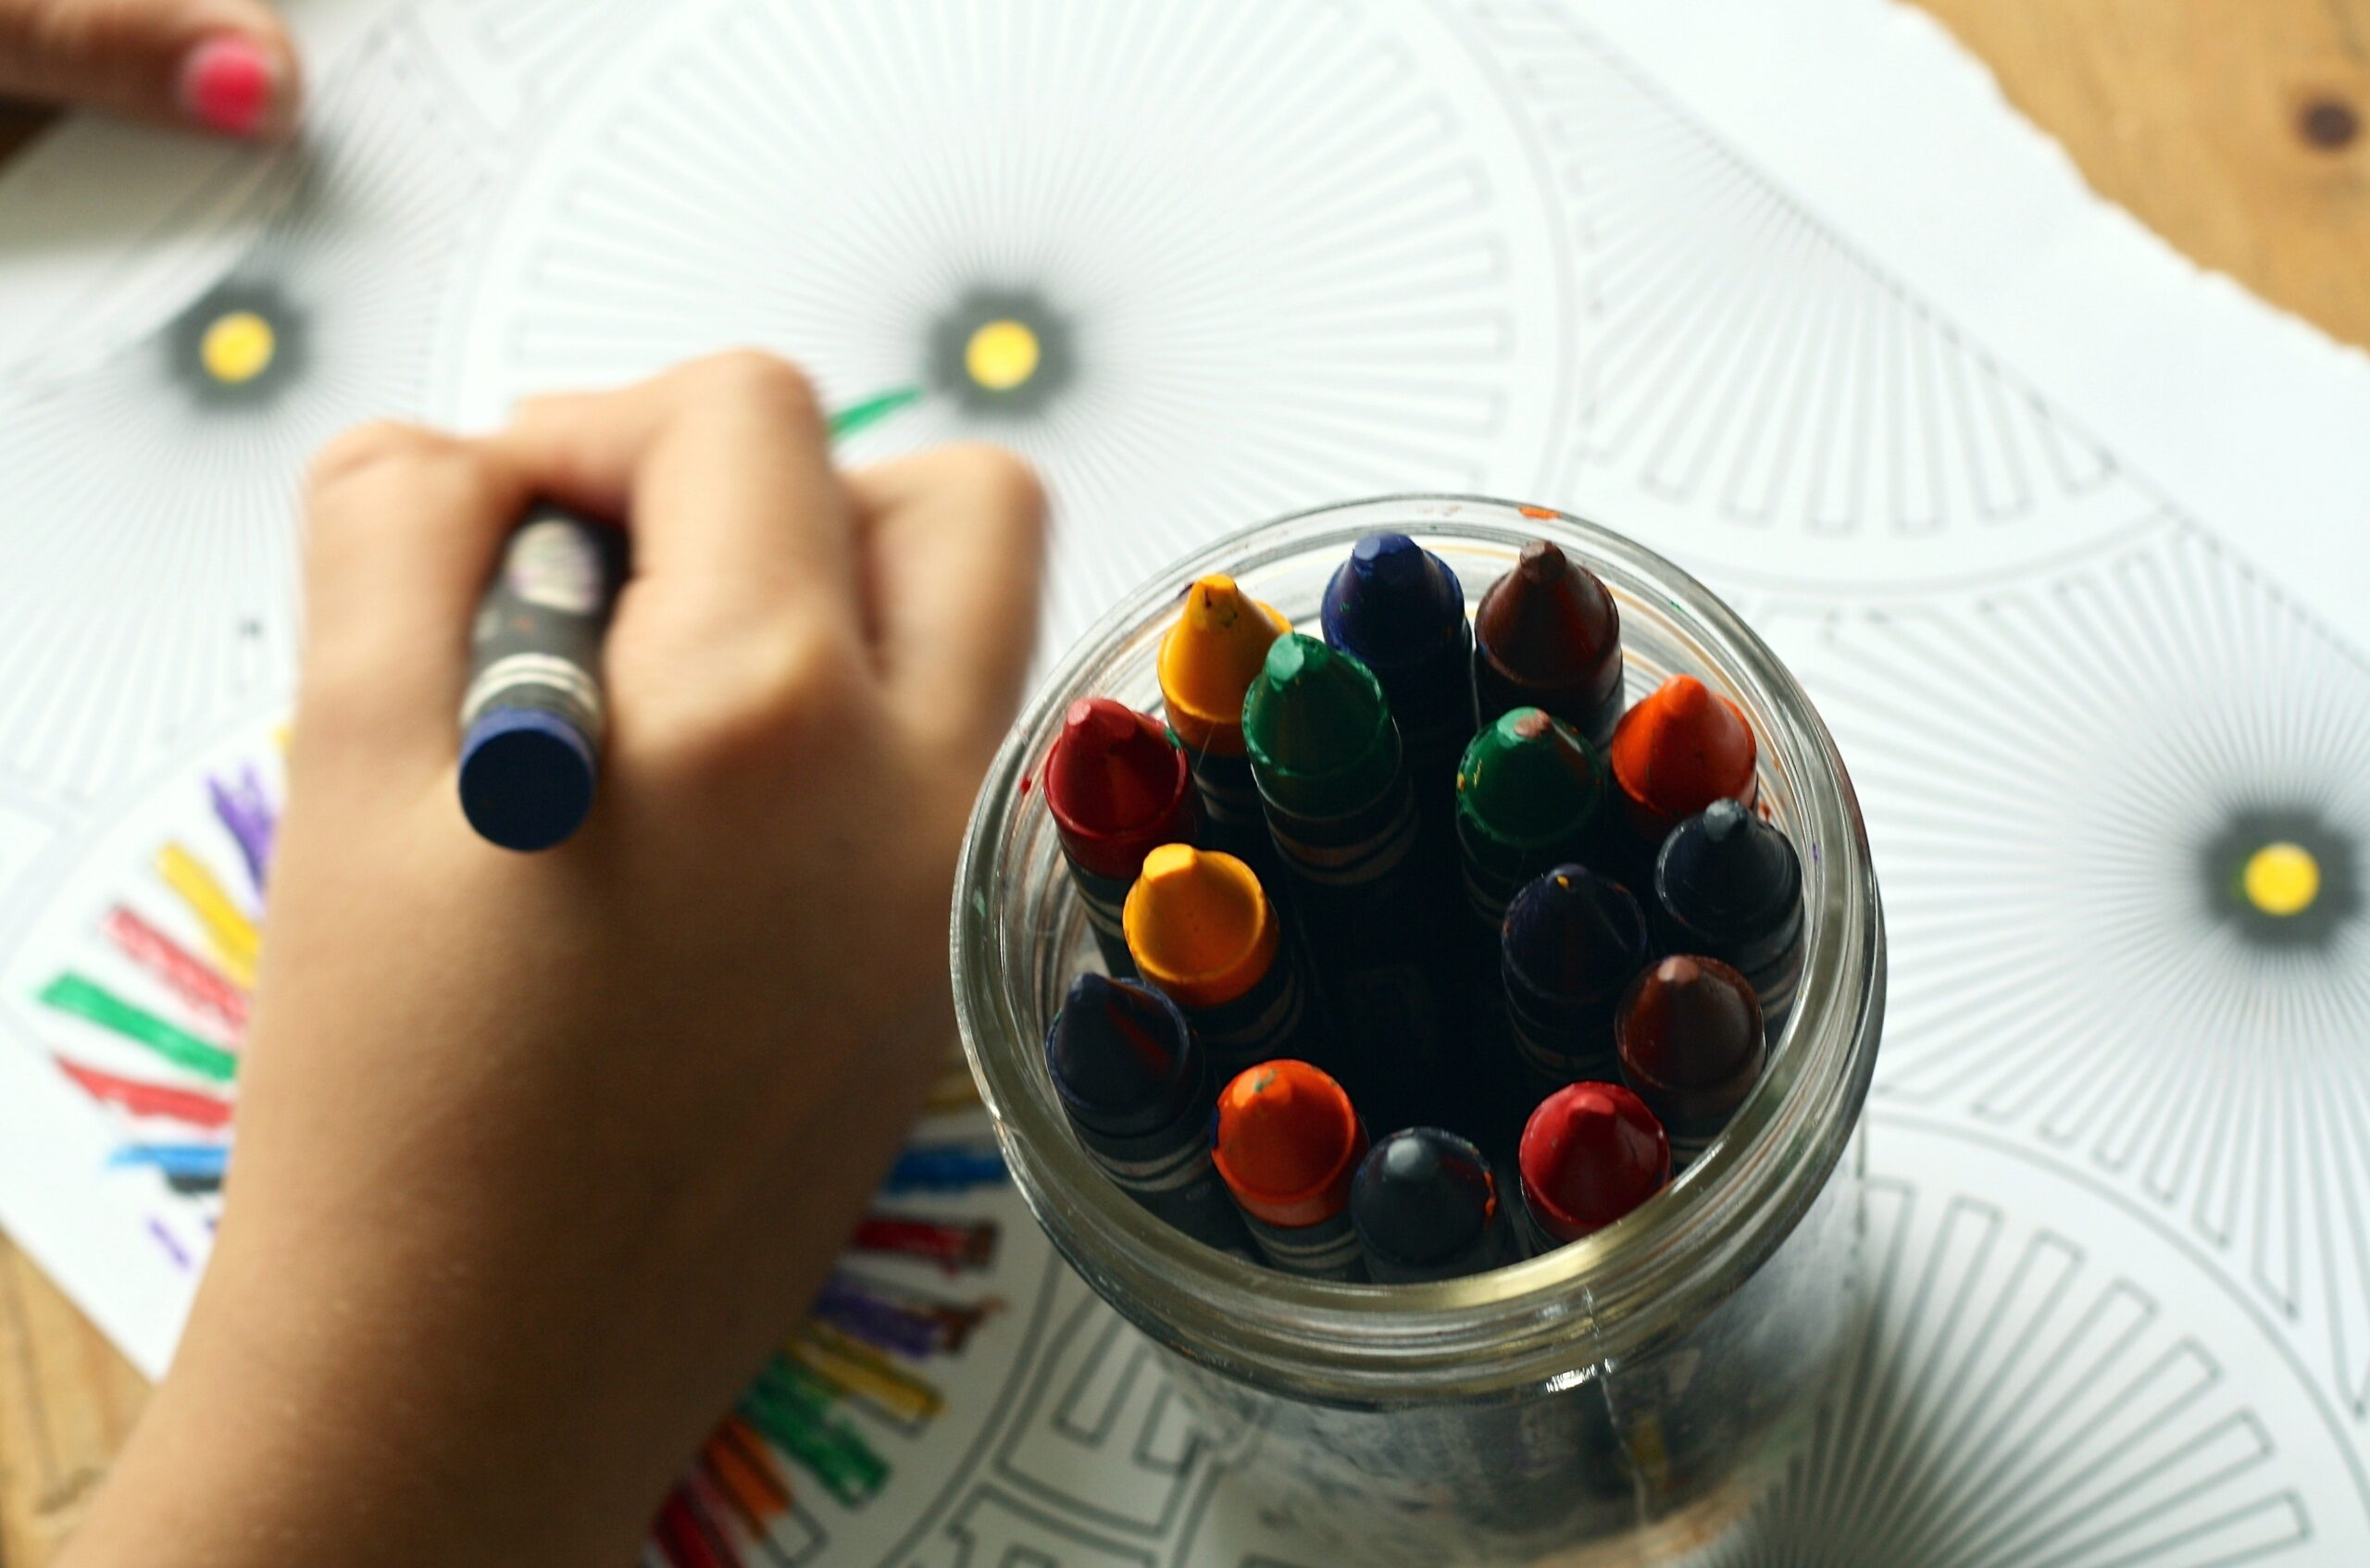 a student coloring a coloring book